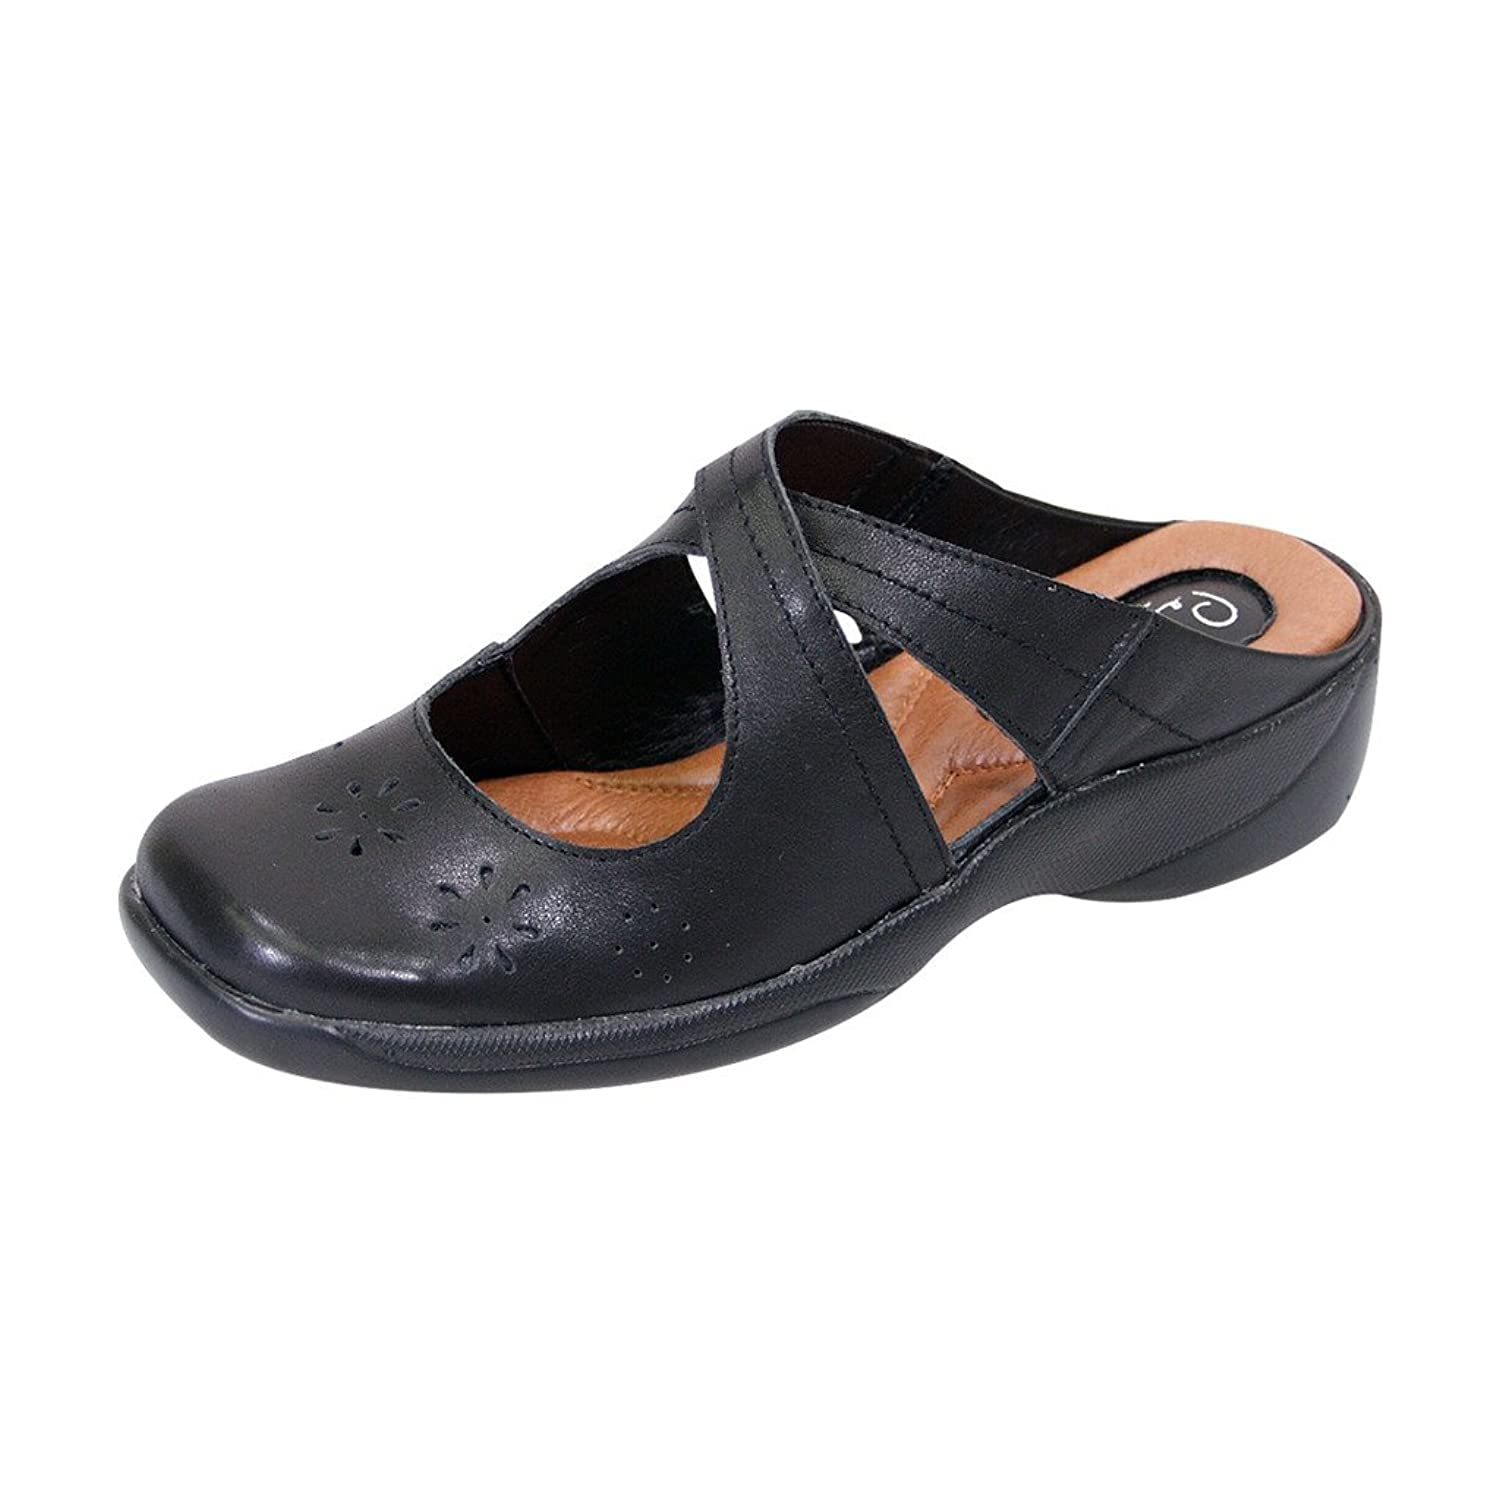 FIC PEERAGE Casey Women Wide Width Casual Leather Comfort Clogs for Everyday (Size & Measurement Guides)